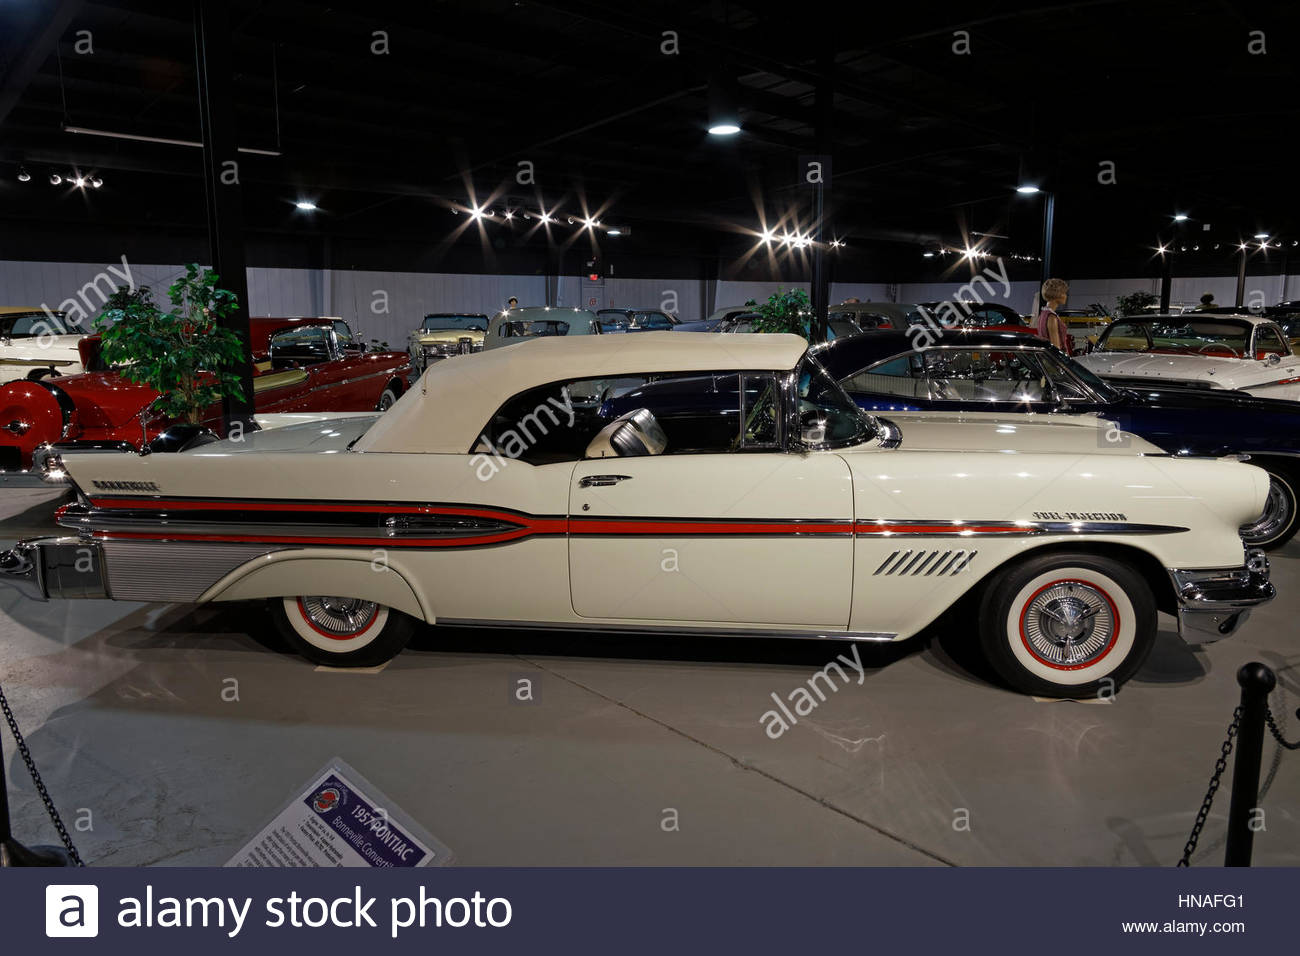 Vintage cars on display at the Northeast Classic Car Museum, Norwich, New York, USA - Stock Image